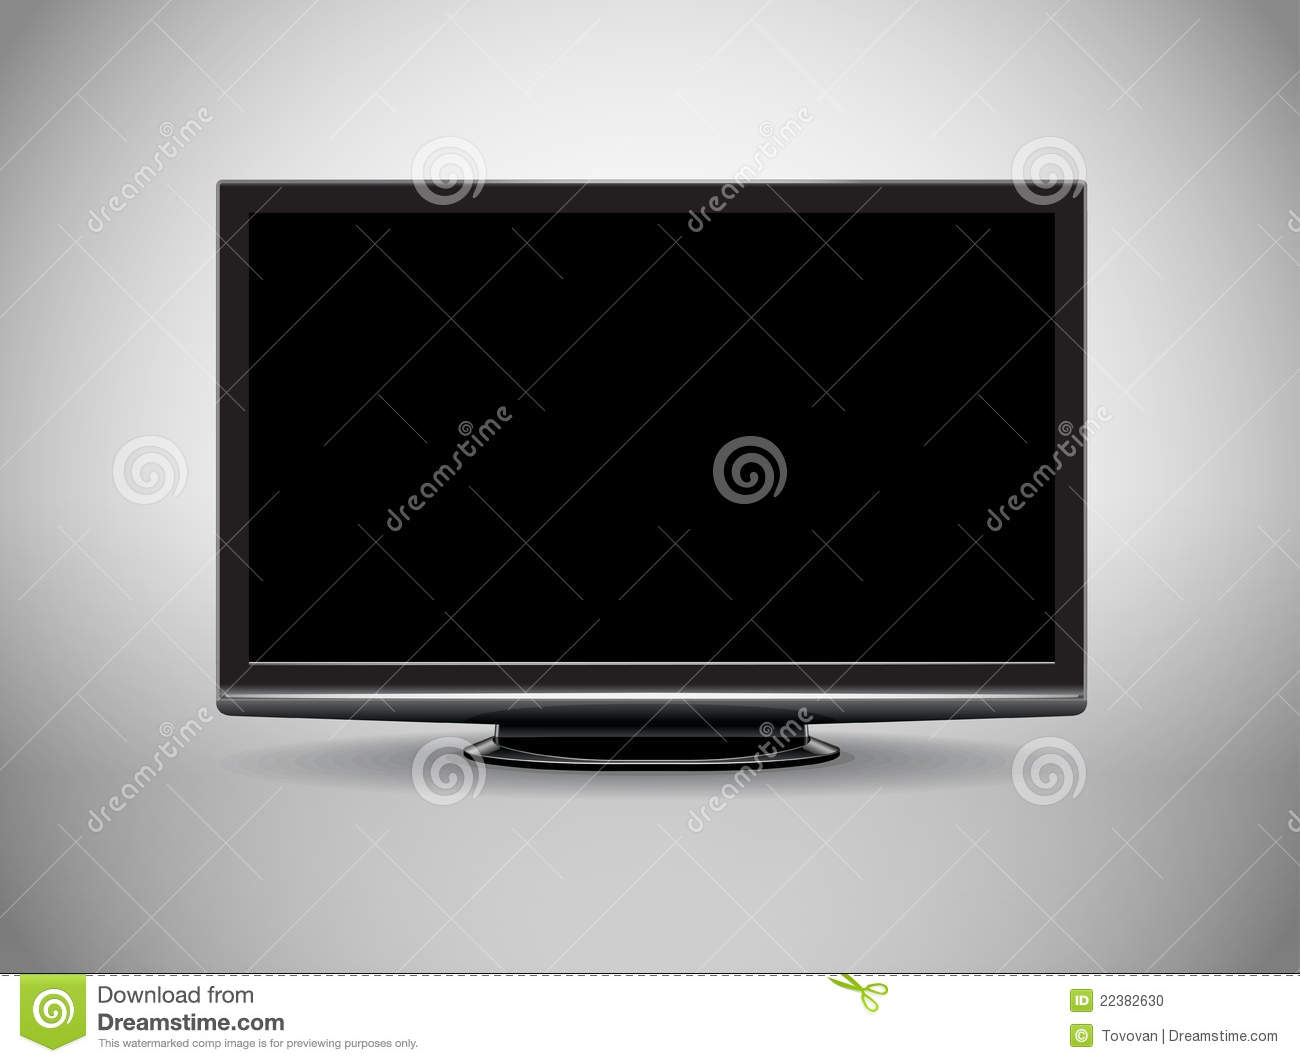 hdtv implications for high definition television essay Hdtv: implications for high definition television hdtv (high definition television) has many positive attributes and is the television set of the future, but the primary concern is how this revolutionary standard can coexist and eventually replace the existing color tv system.